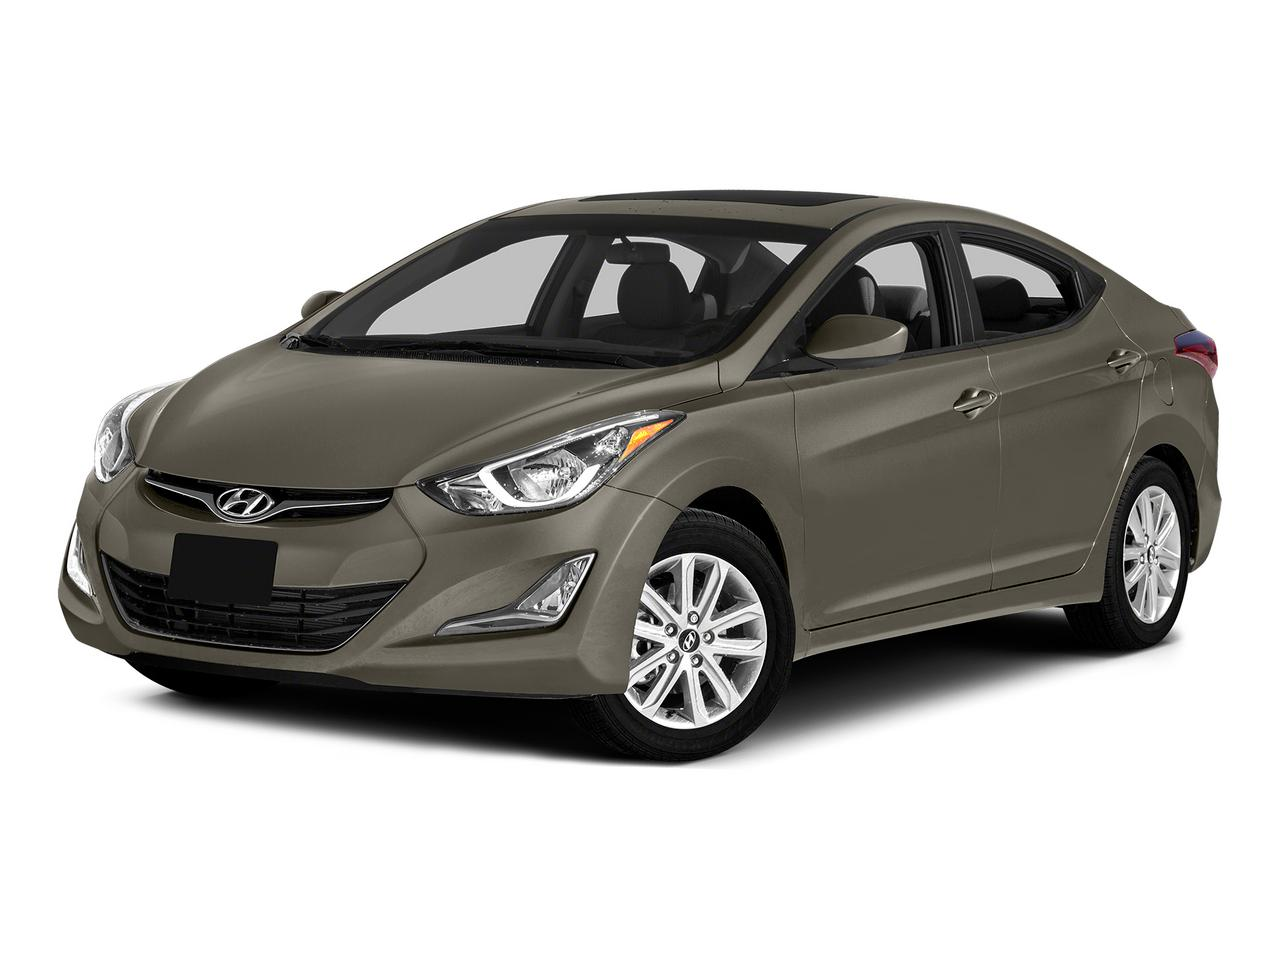 2015 Hyundai Elantra Vehicle Photo in Austin, TX 78759